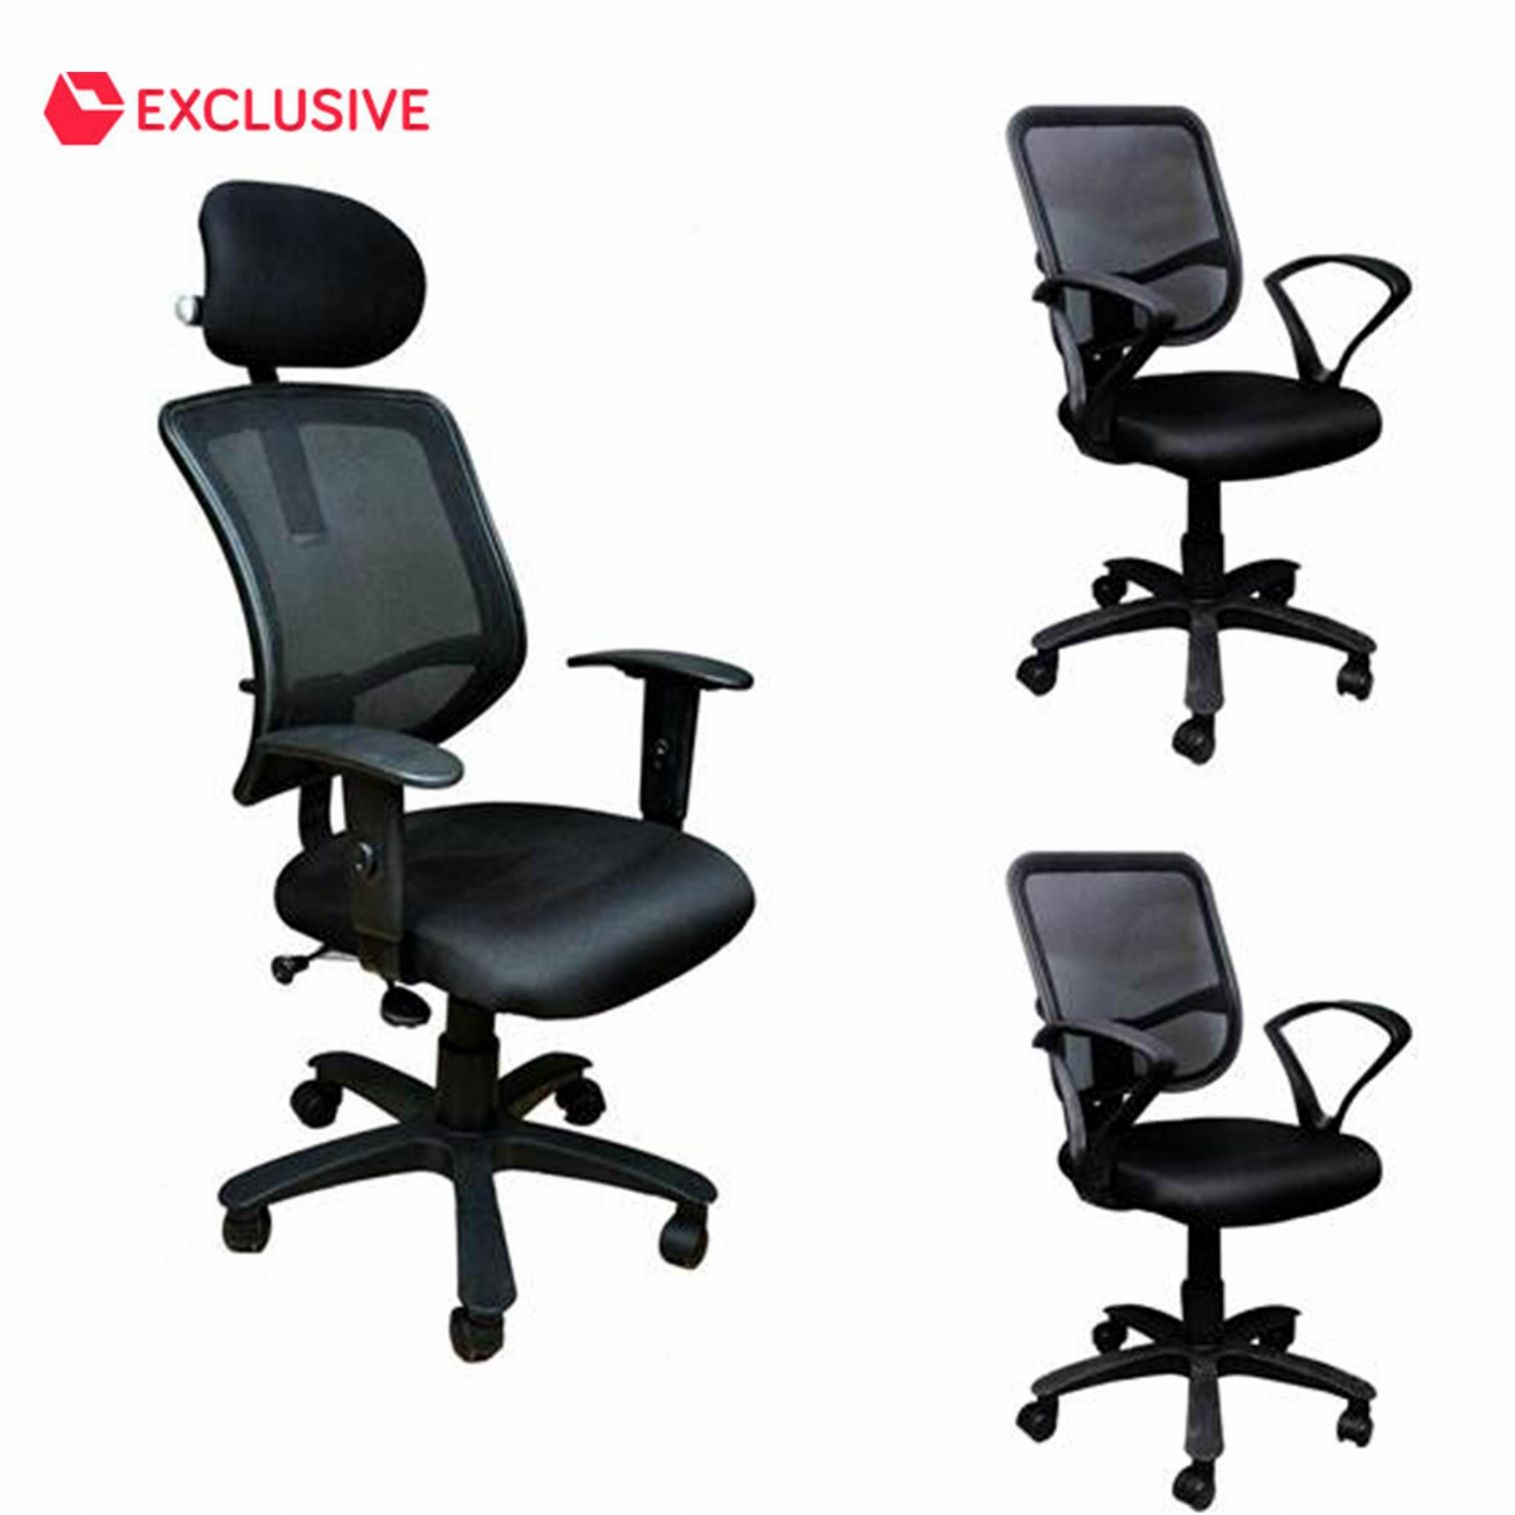 How To Buy Office Chair Furniture For Home Office Check More At Http Www Drjamesghoodblog Com How To Buy Office Chair